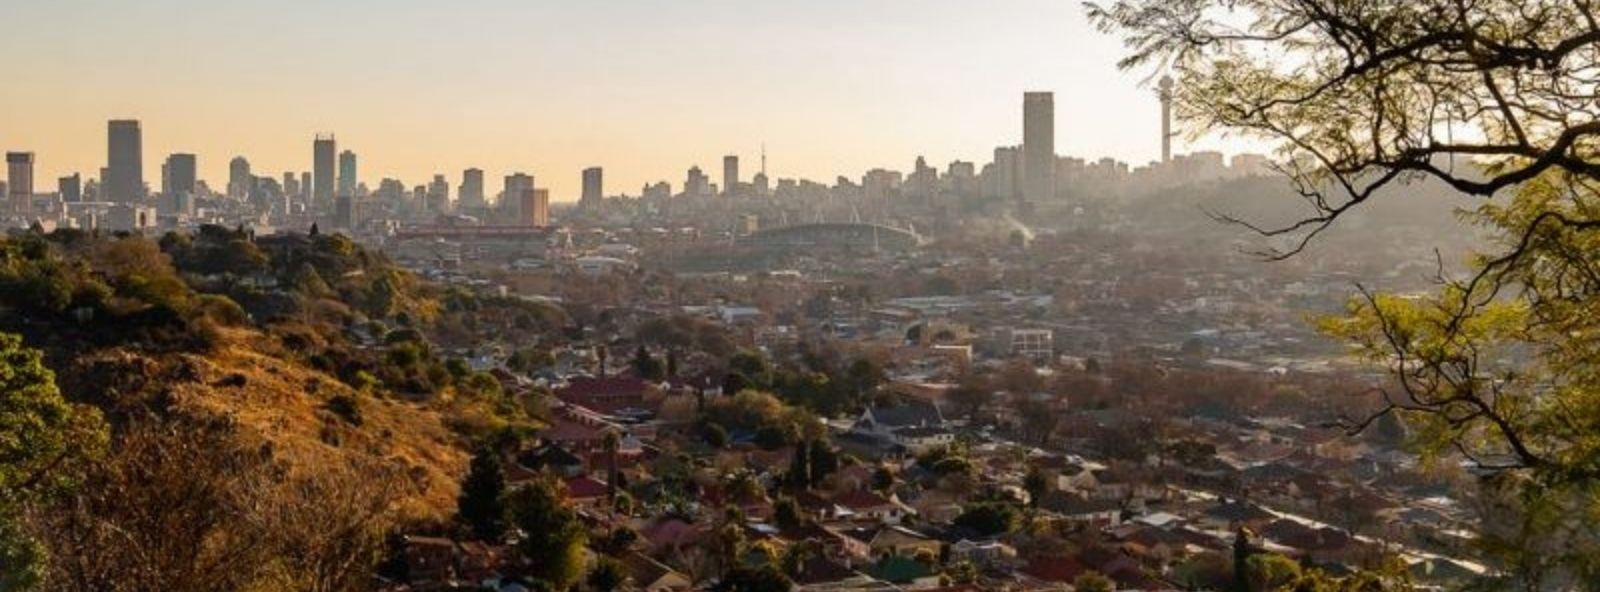 Johannesburg Skyline by Day